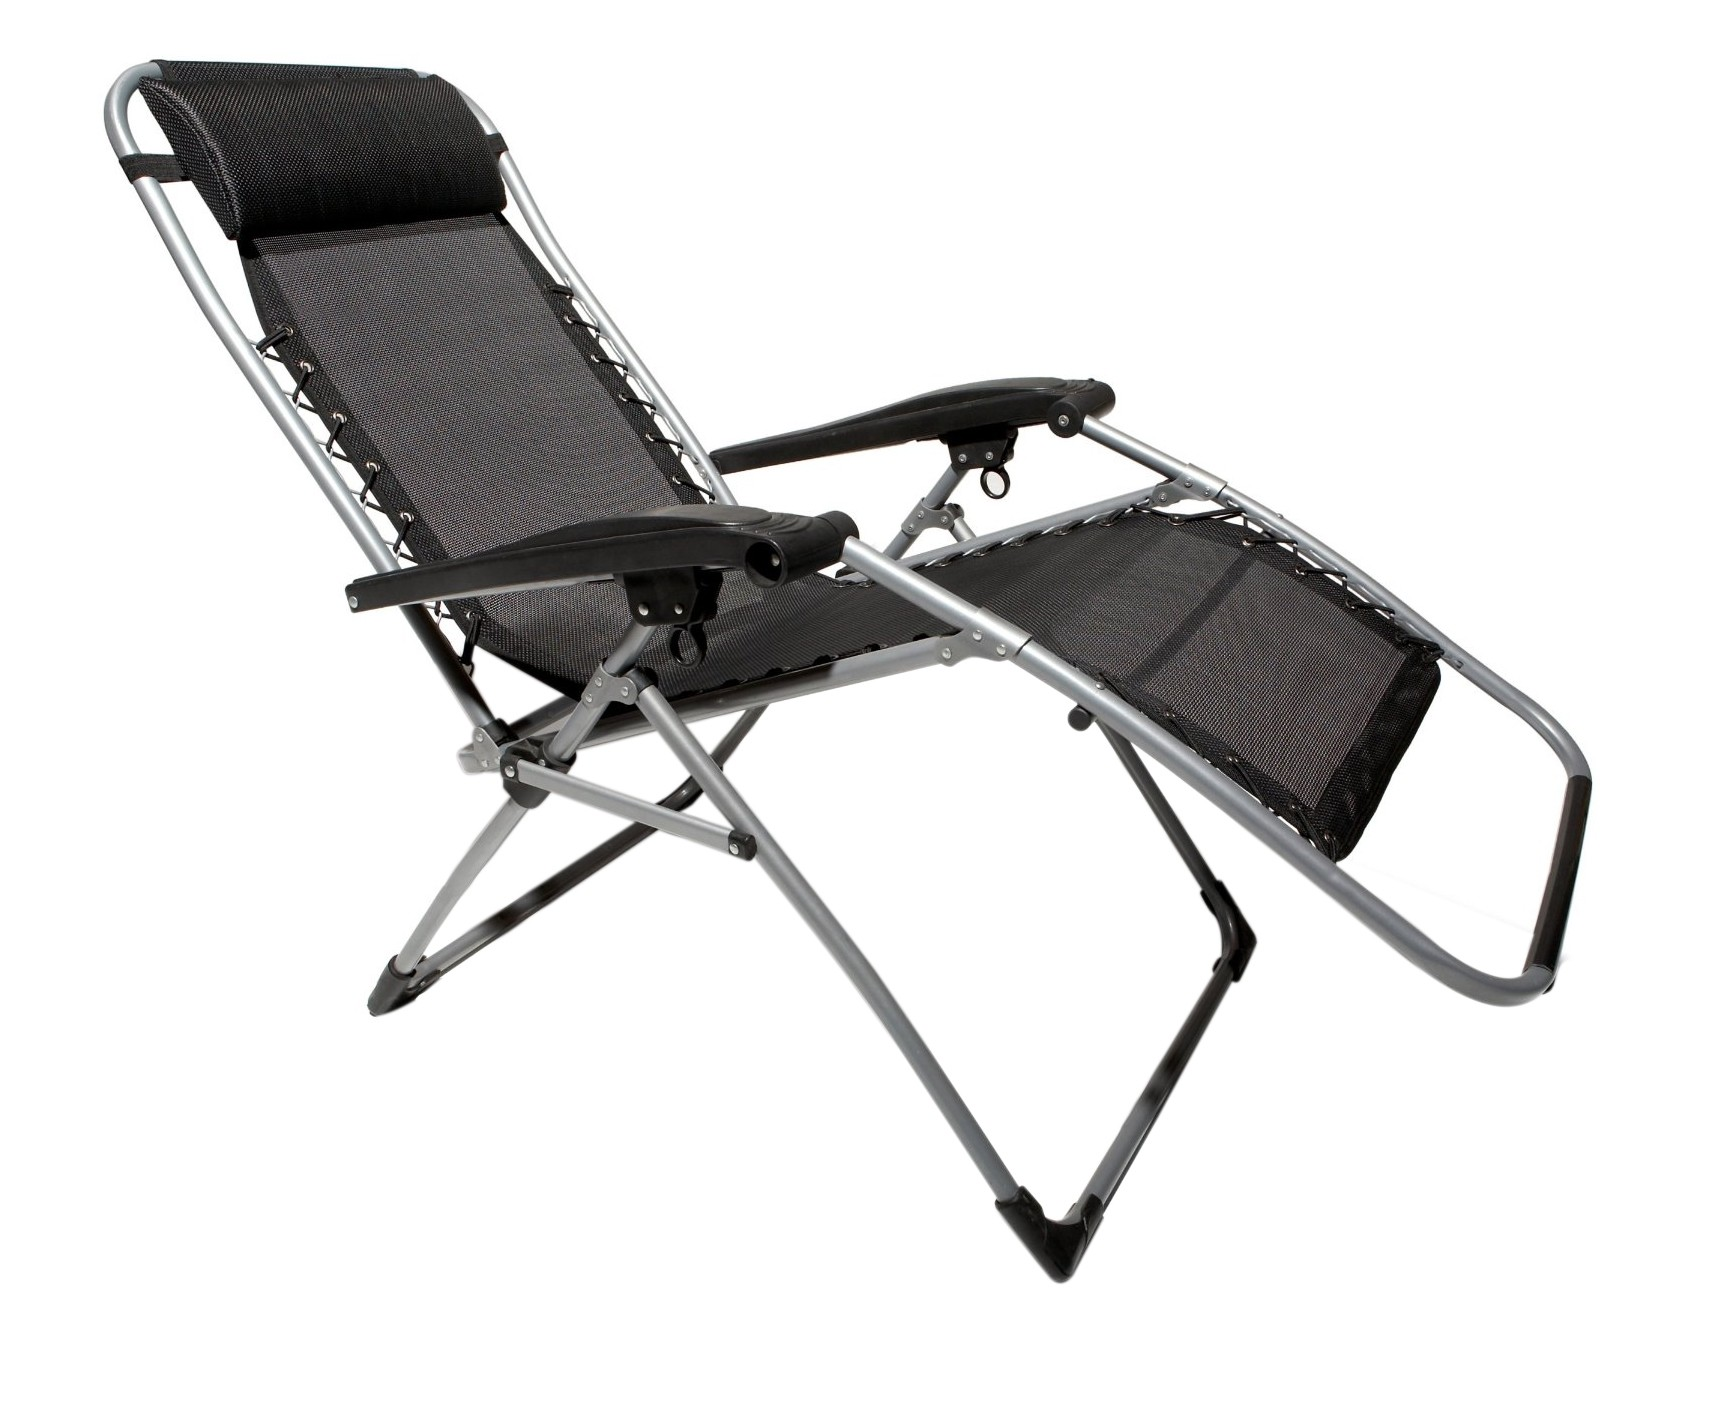 Portable Folding Chair T Mak s International